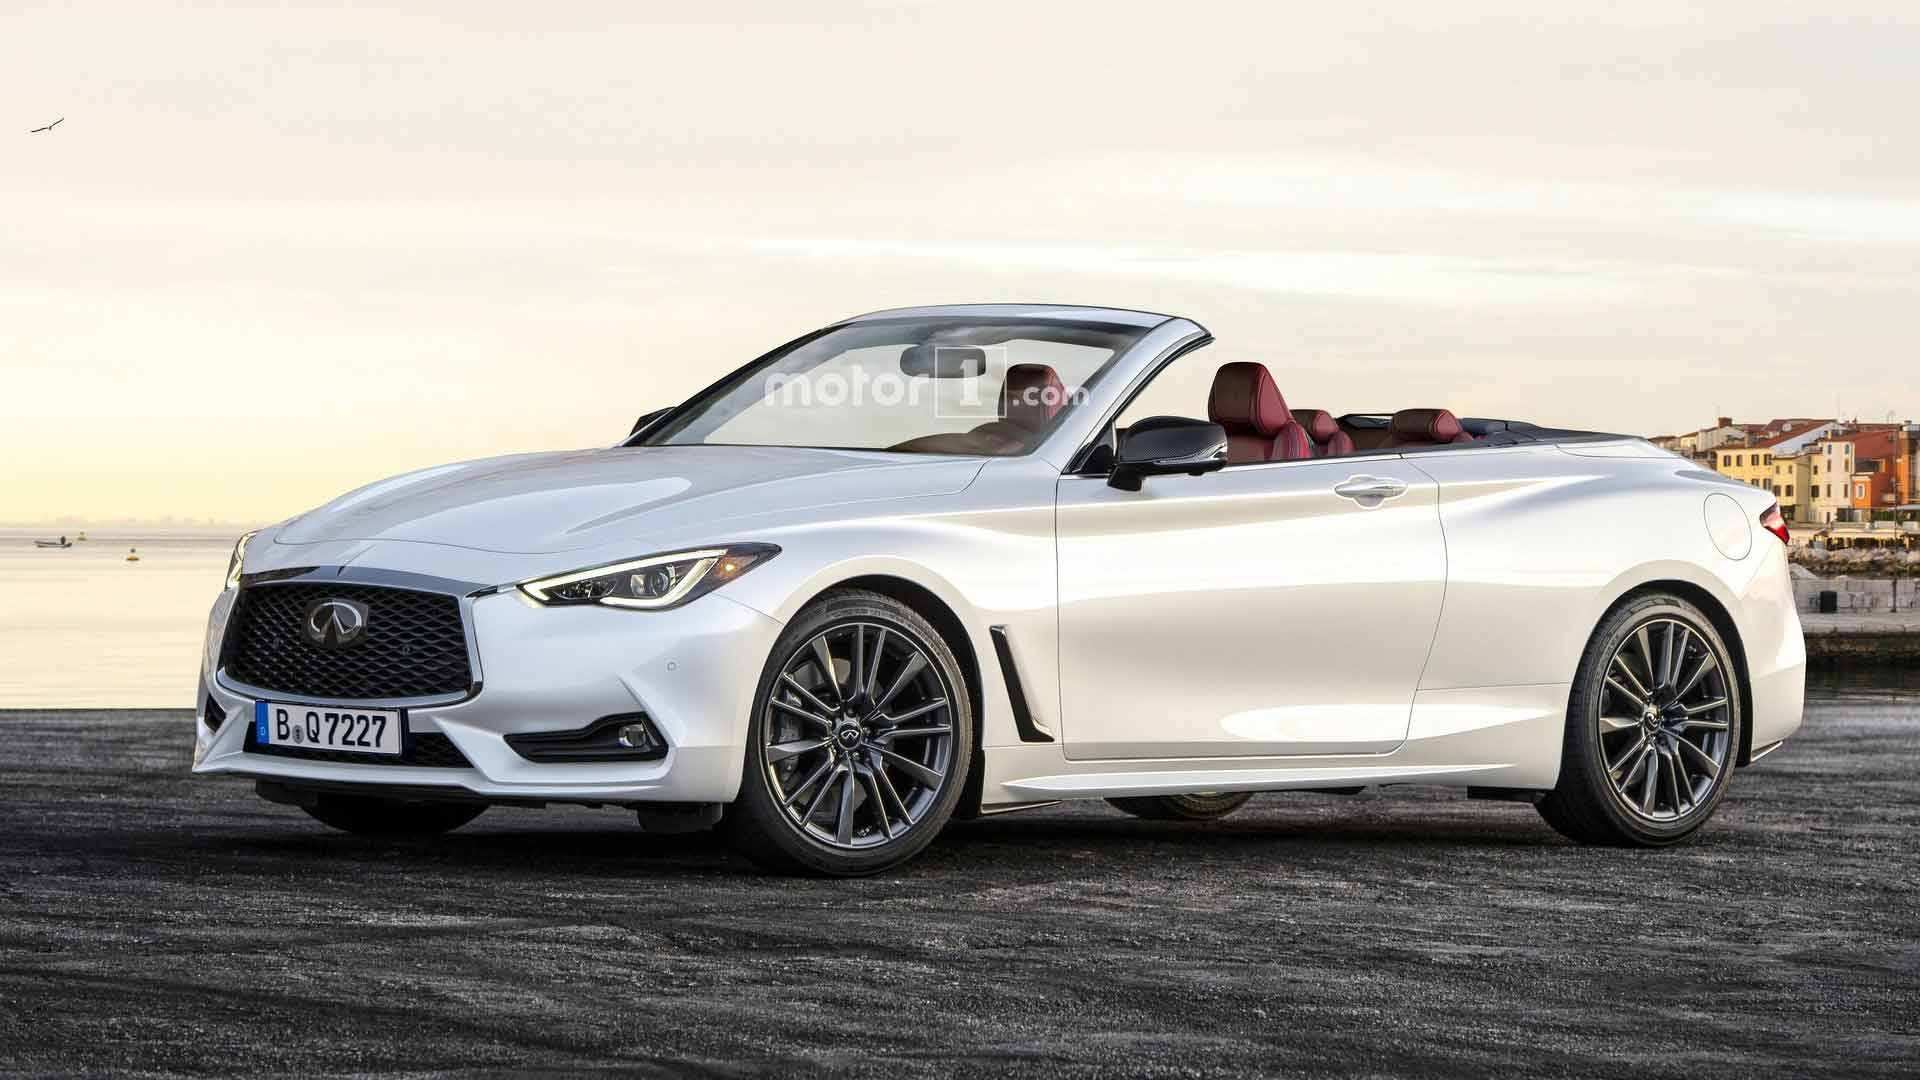 51 Great 2019 Infiniti Q60 Convertible Speed Test by 2019 Infiniti Q60 Convertible